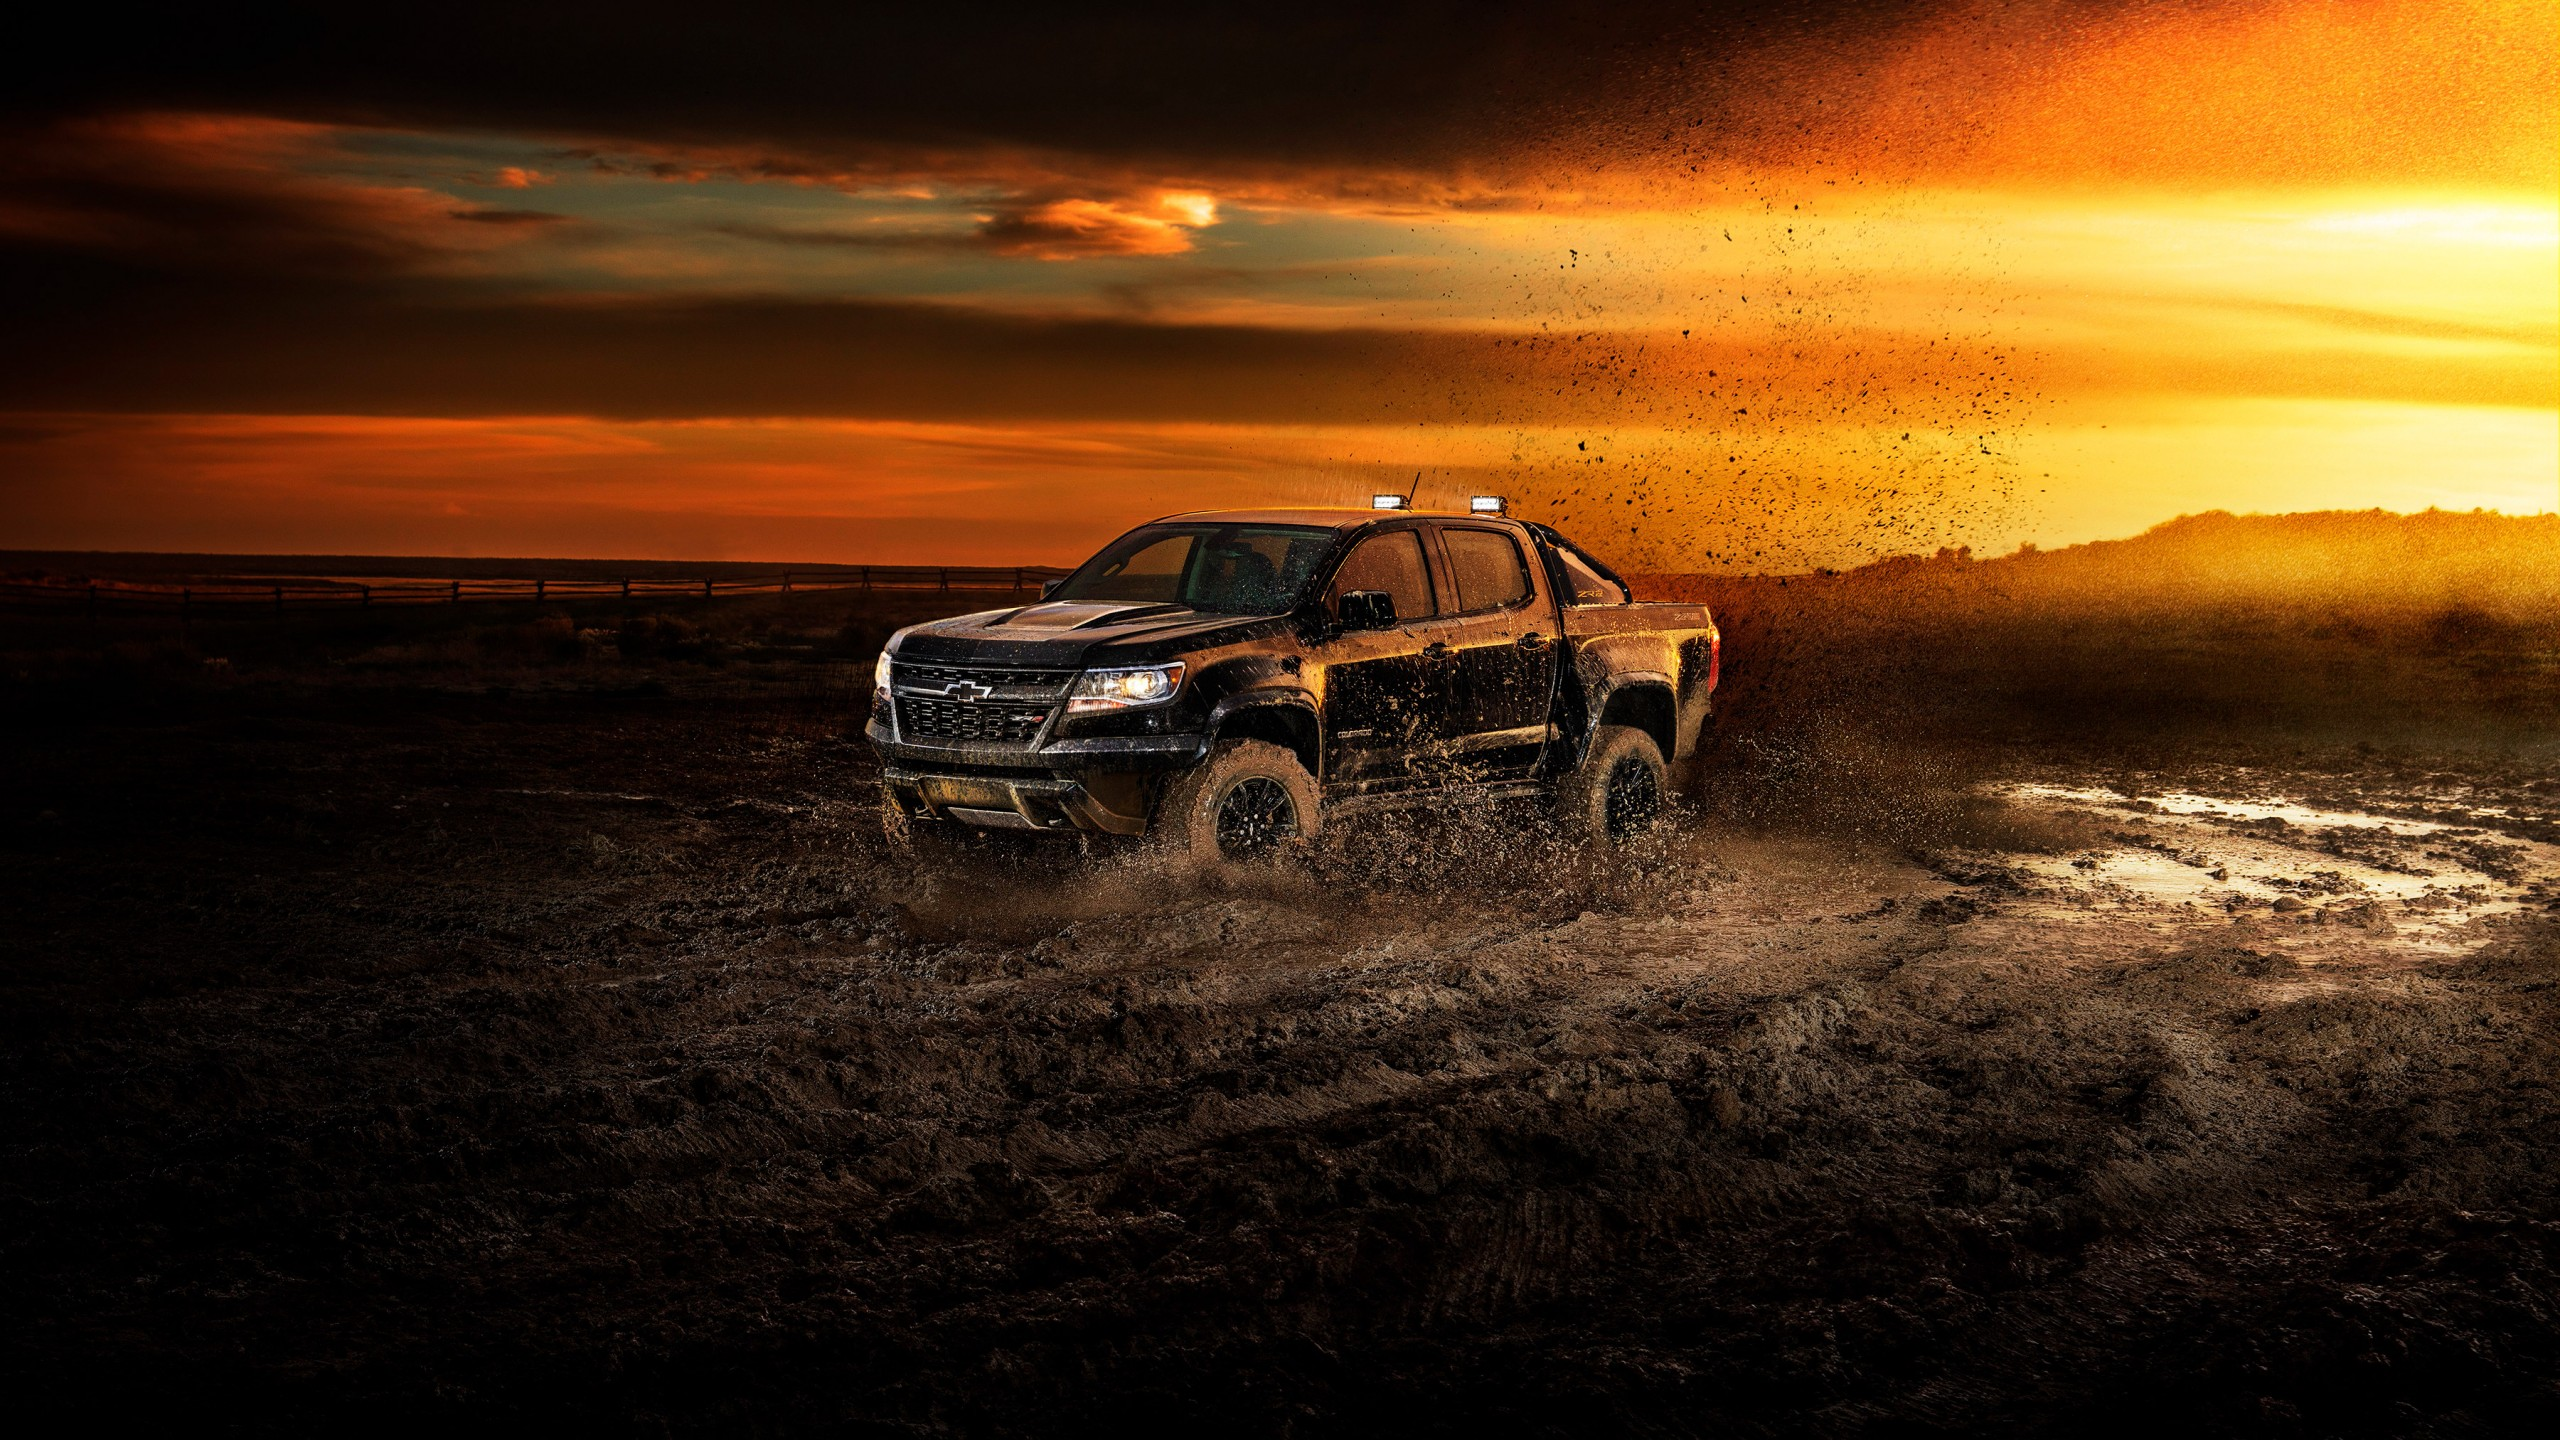 Car Background Wallpaper Hd Download Wallpaper Chevrolet Colorado Zr2 2018 Cars 4k Cars